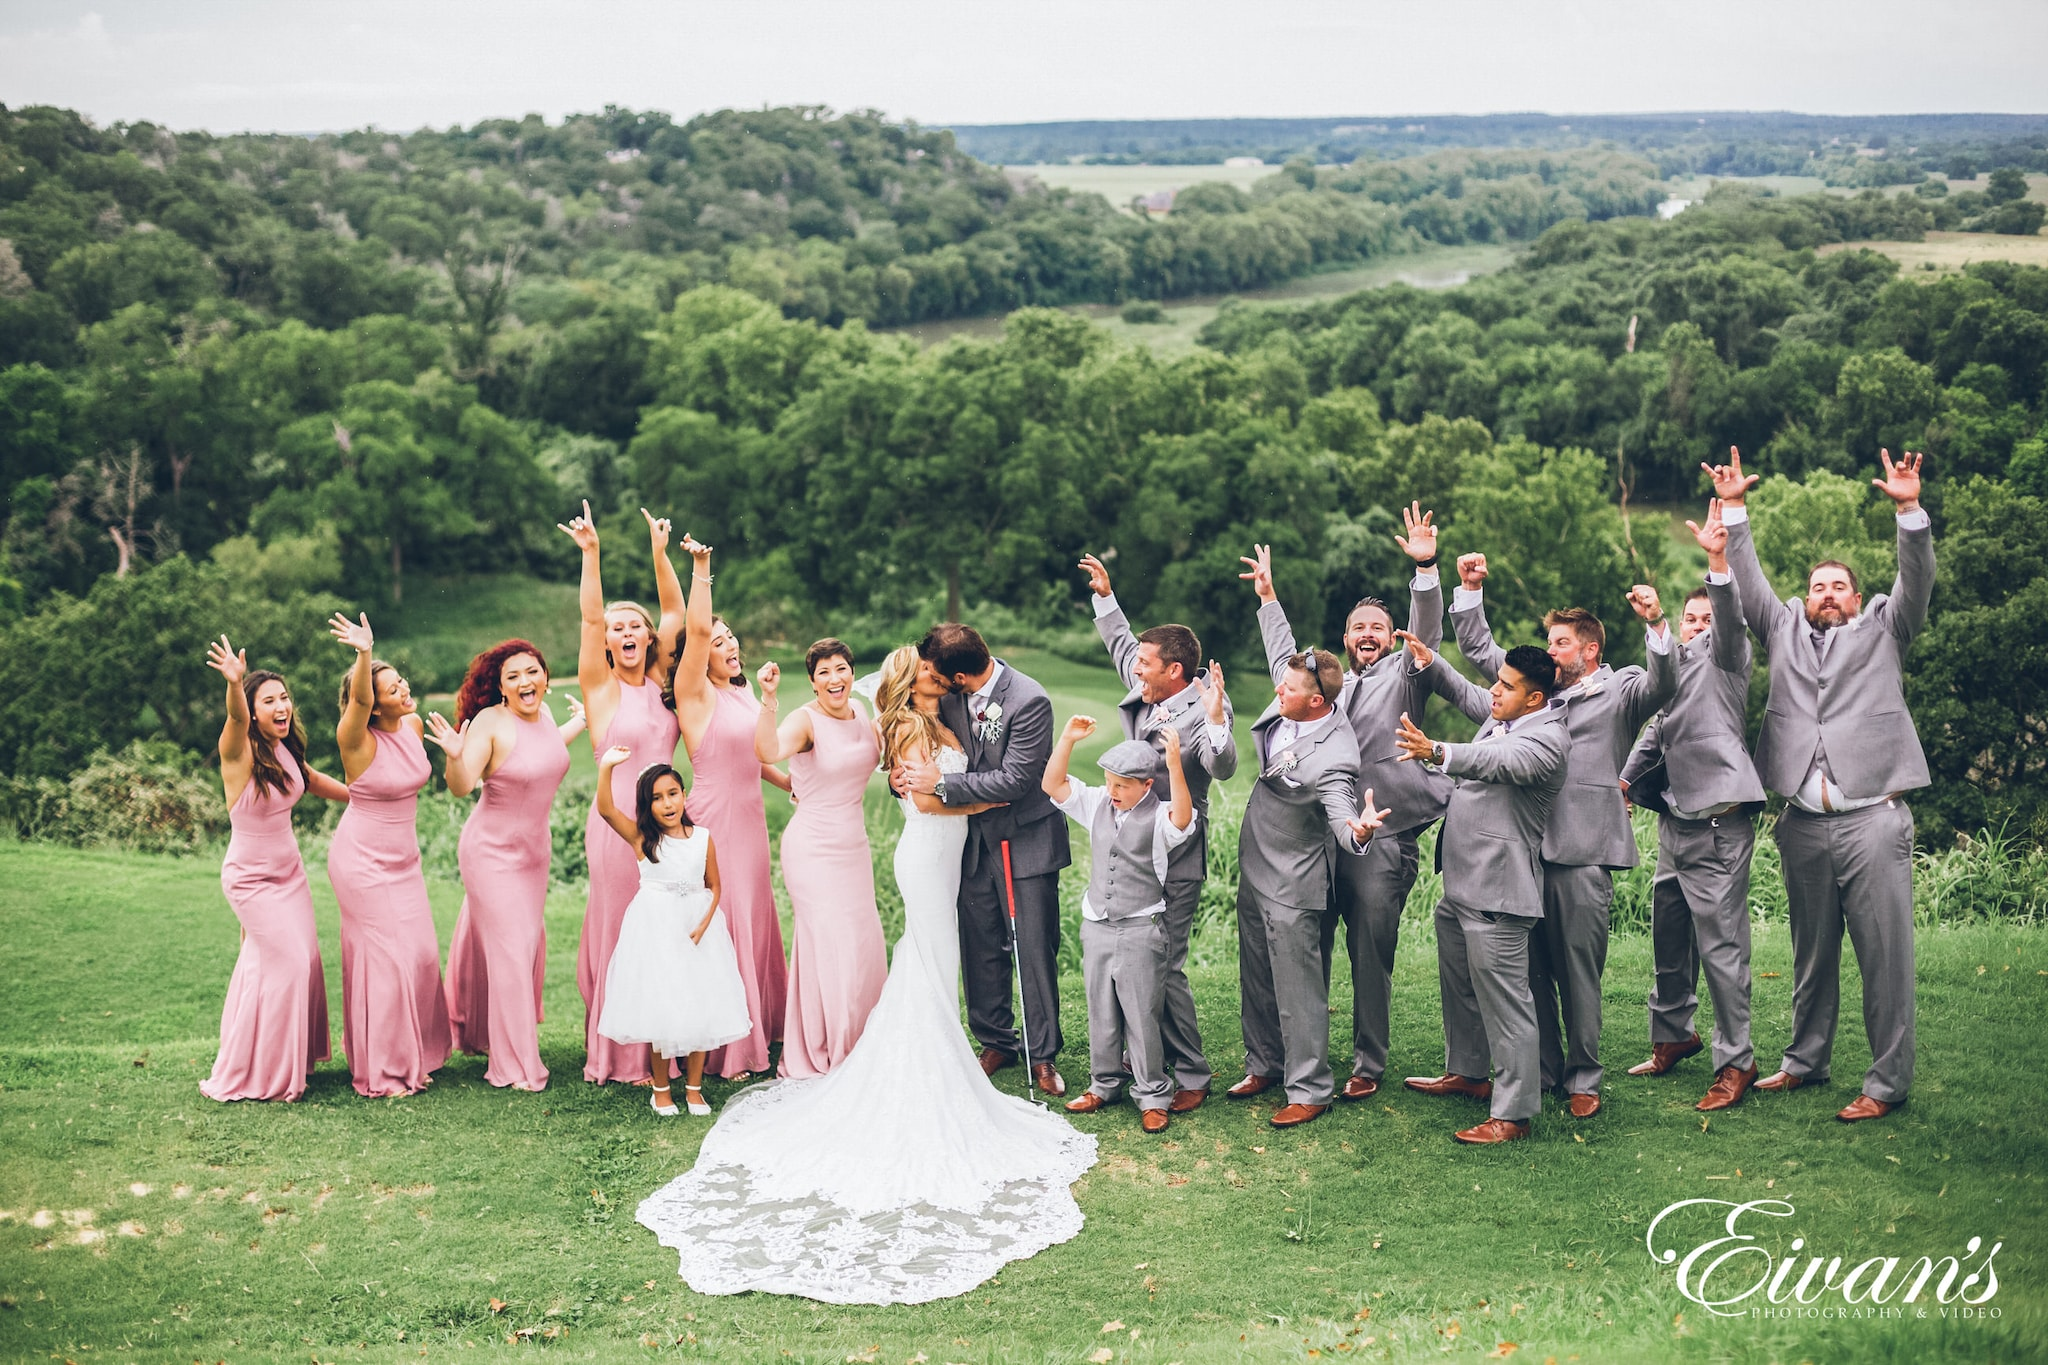 group of people in wedding dress standing on green grass field during daytime